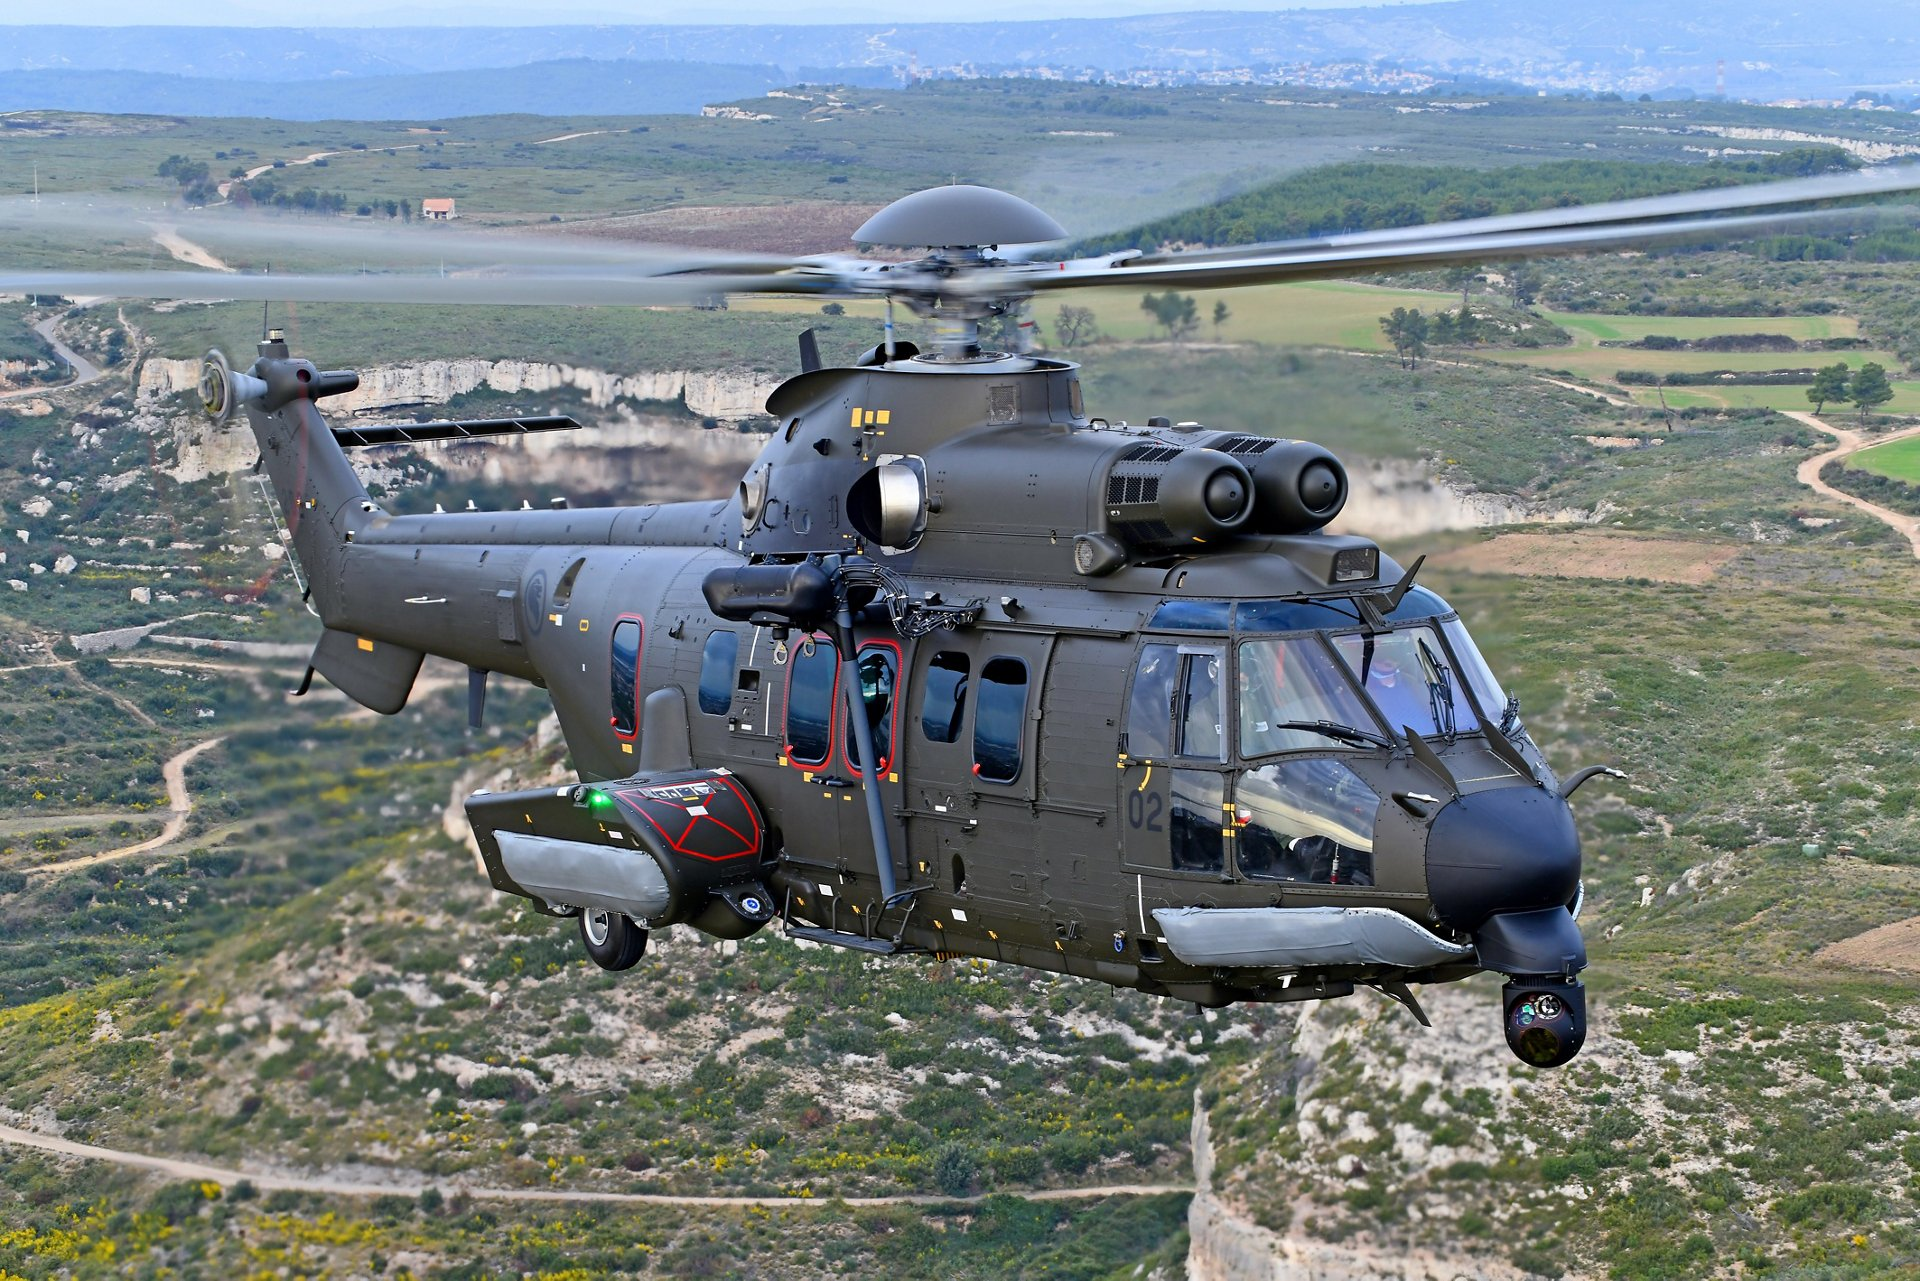 Republic of Singapore Air Force H225M medium lift helicopter In Marignane, southern France.